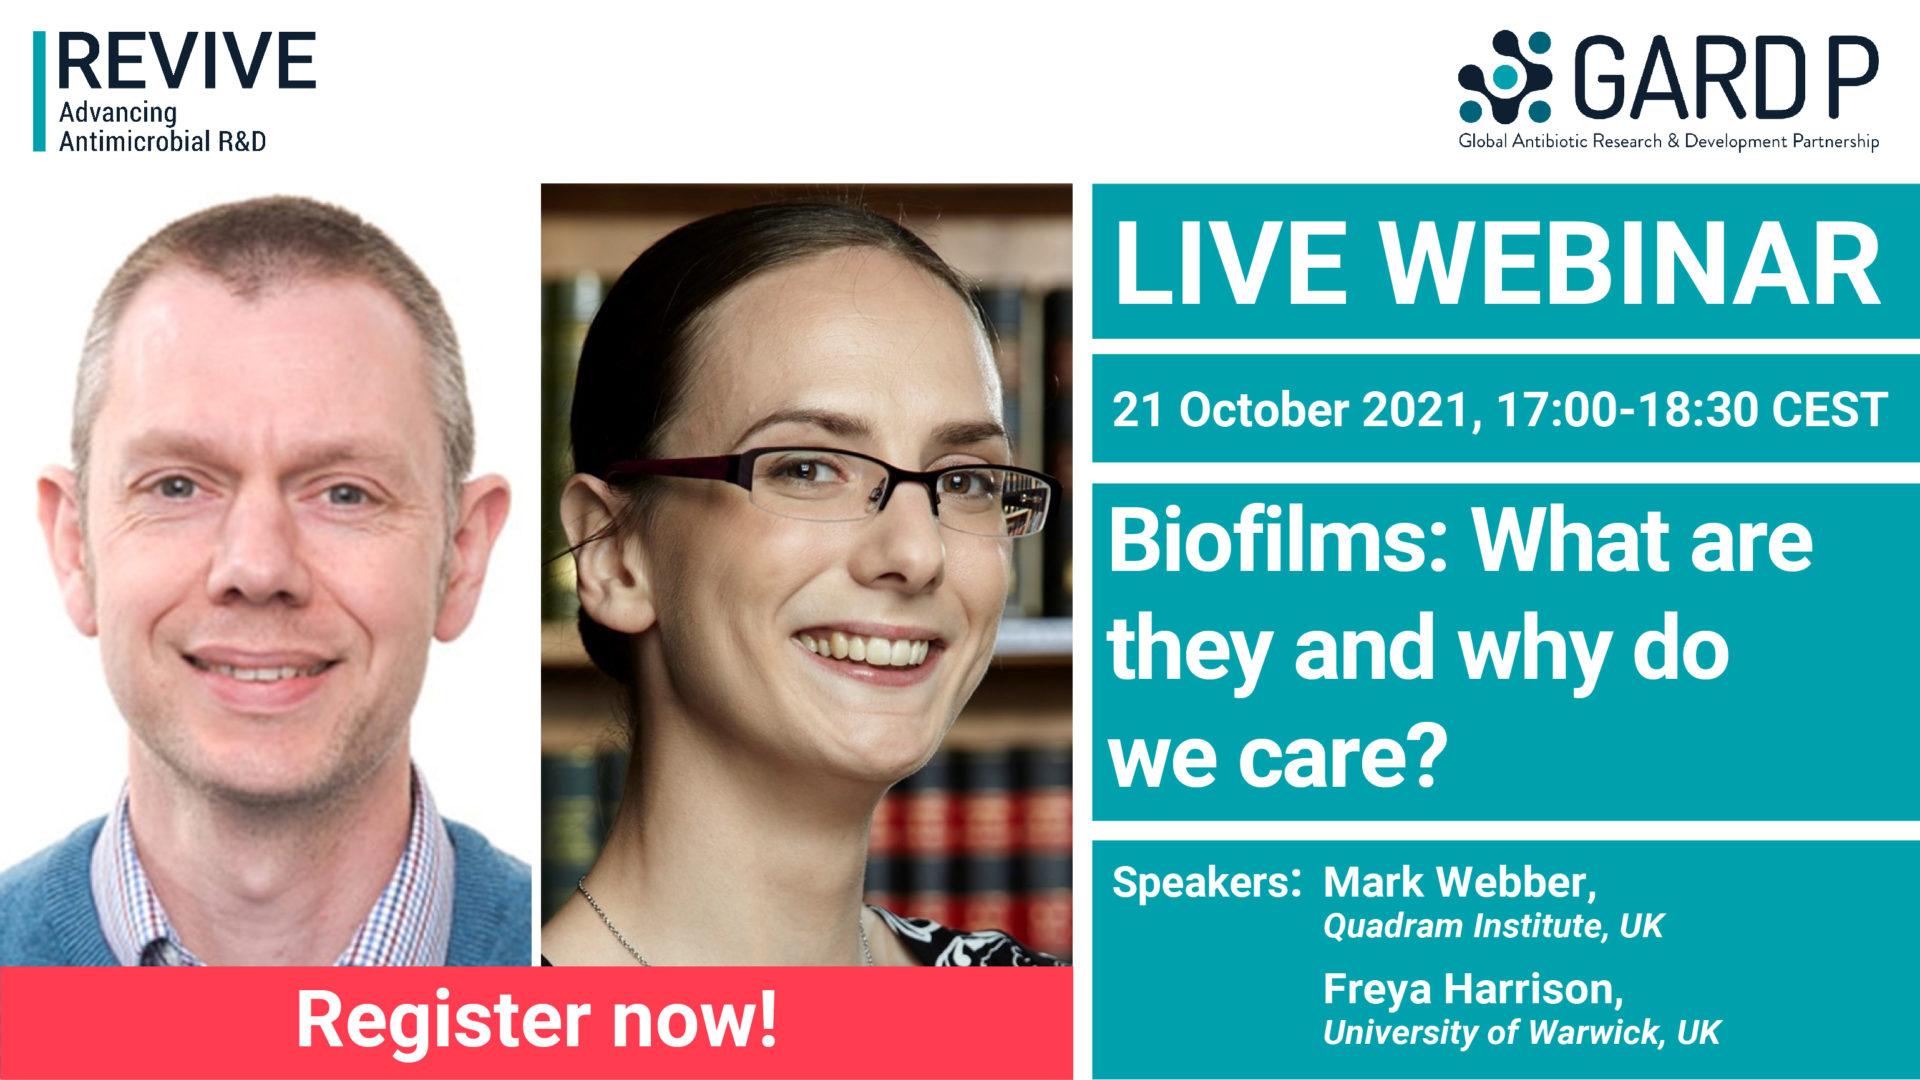 Biofilms: What are they and why do we care?